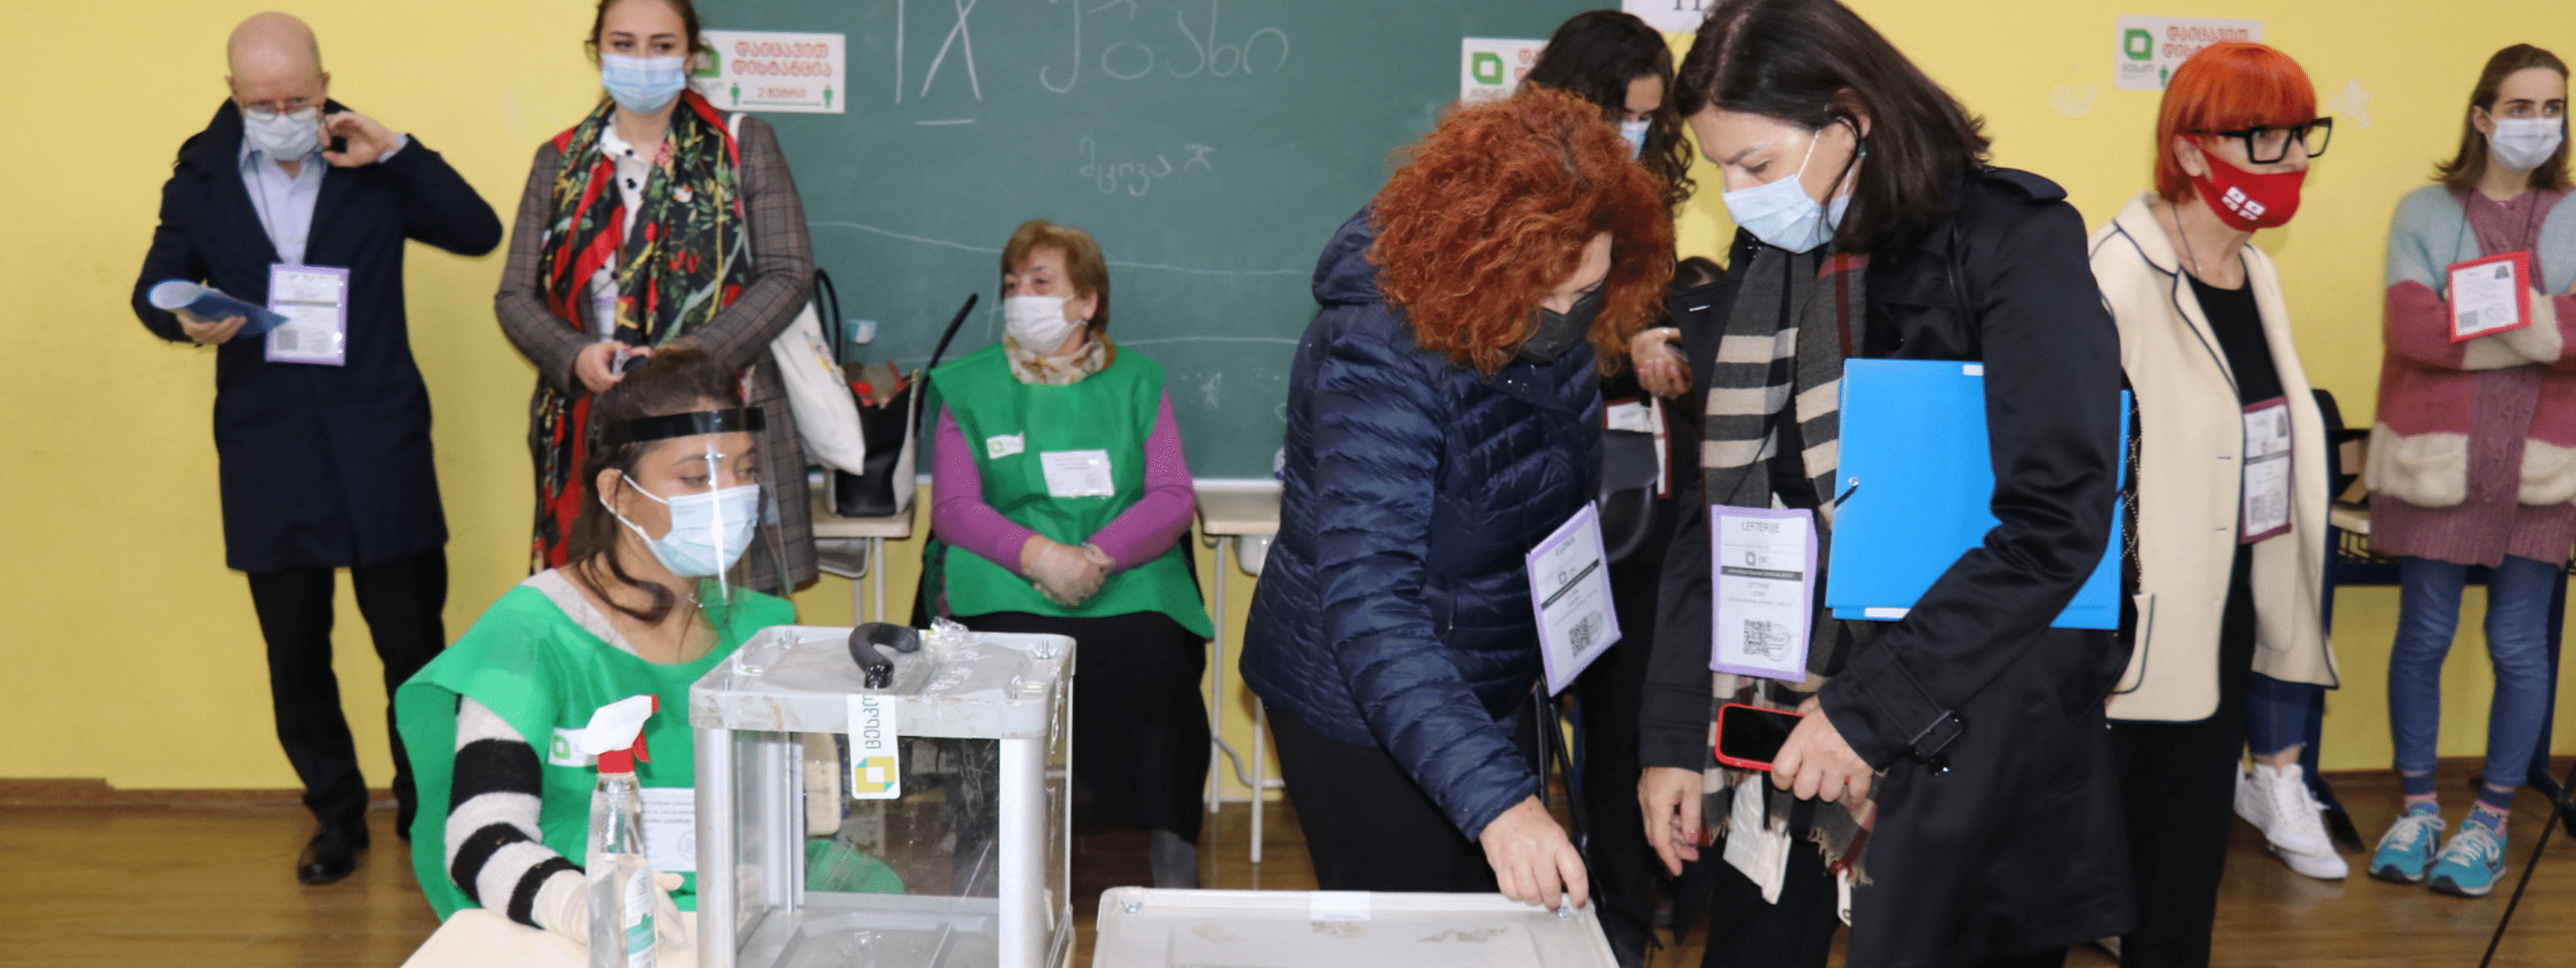 Leader of the OSCE election mission Elona Gjebrea Hoxha observing in a polling station in Tbilisi, Georgia in October 2020. (OSCE Parliamentary Assembly/CC BY-SA 2.0)